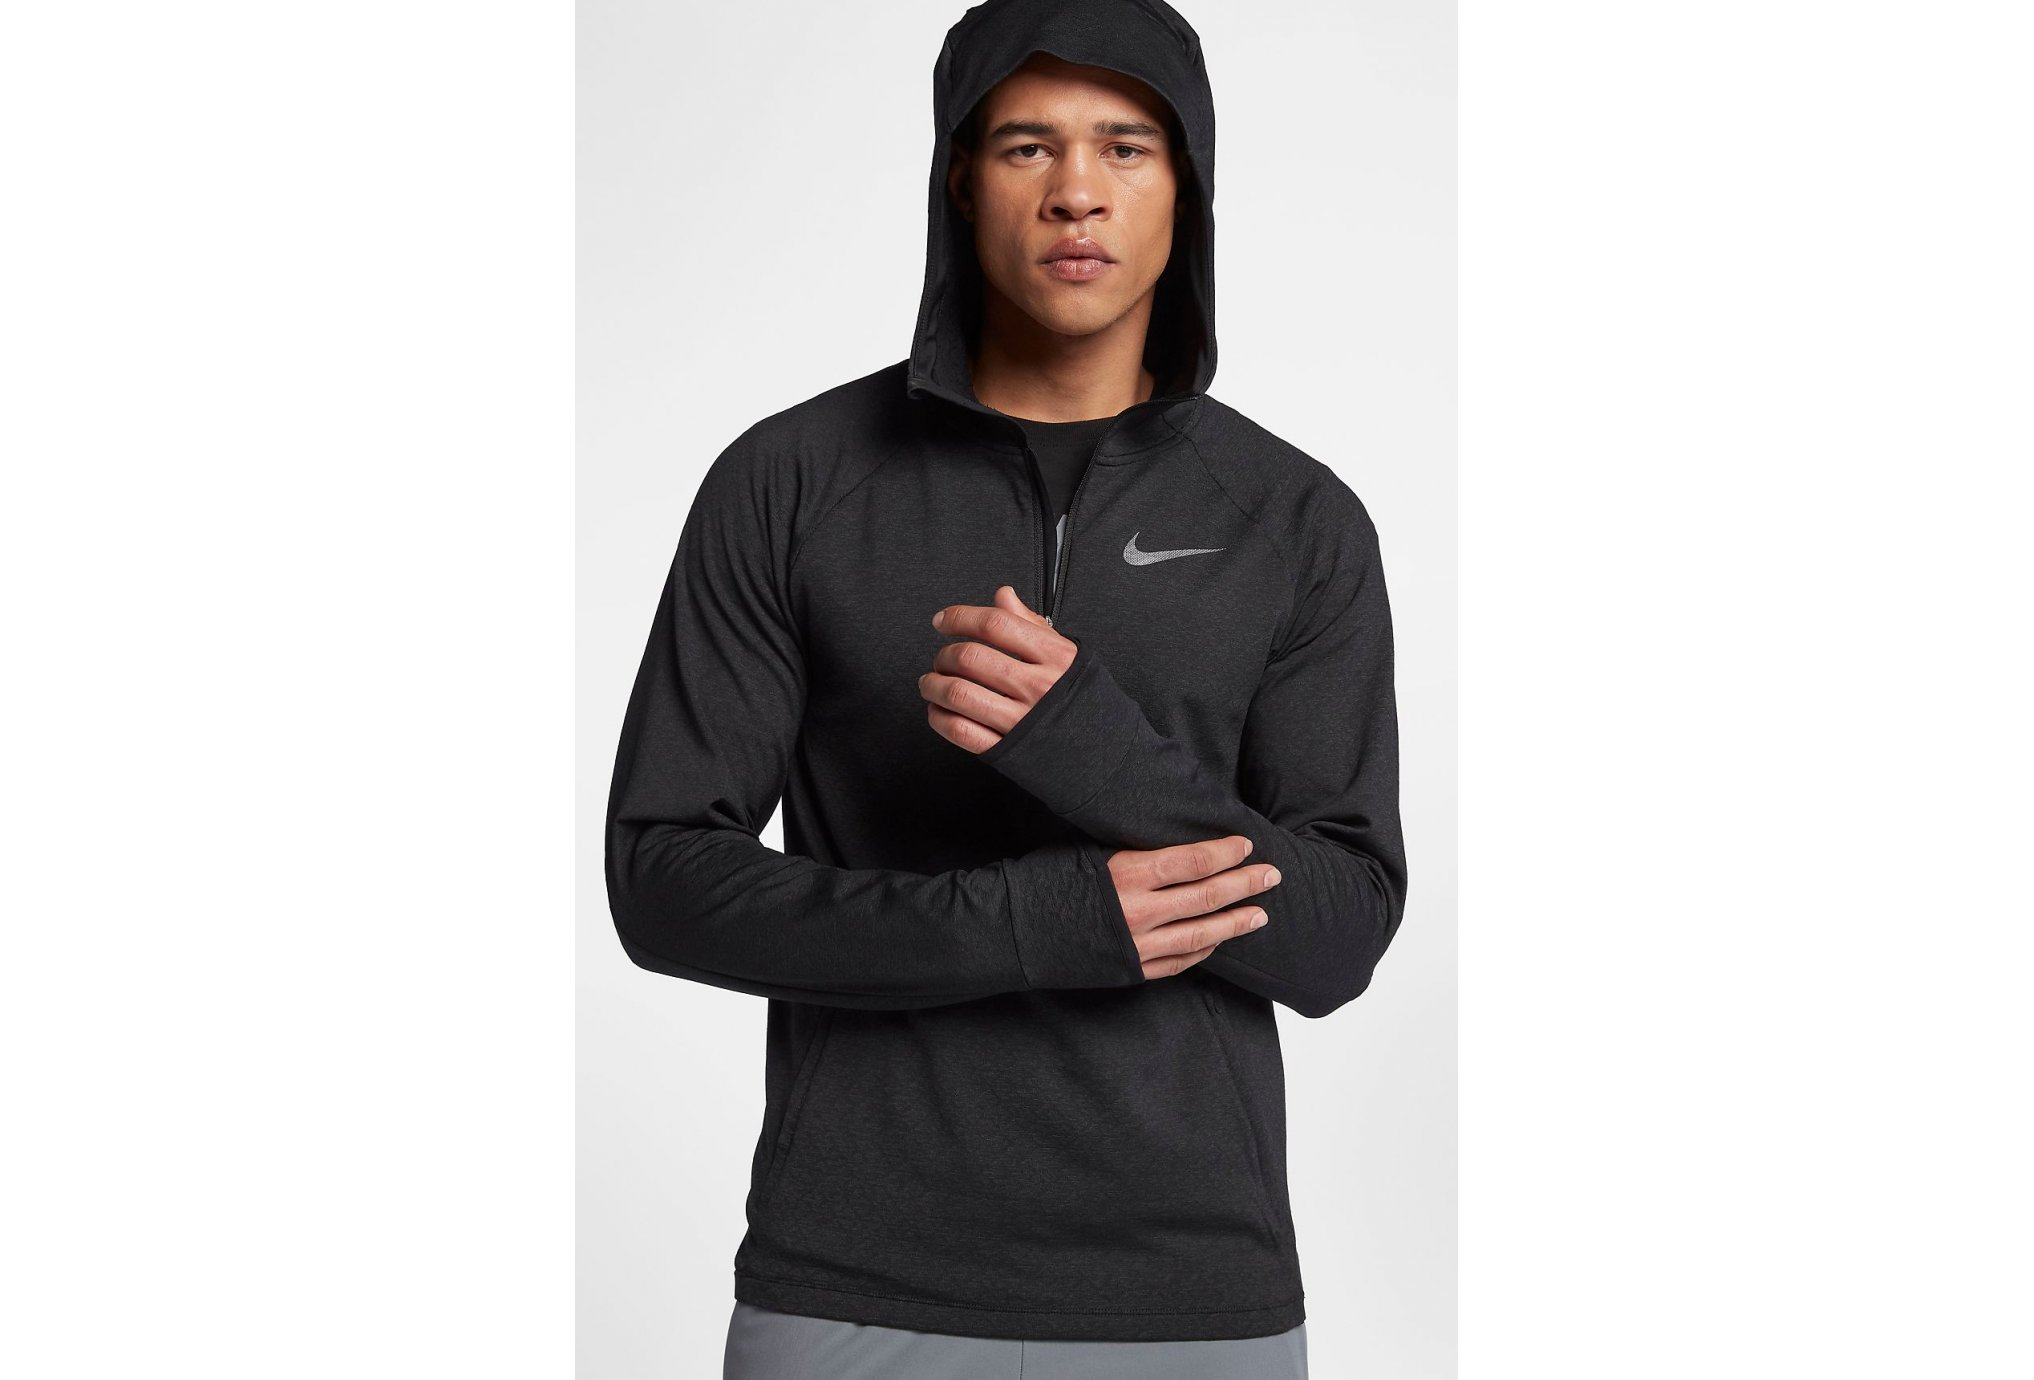 nouveau produit e096f 88351 photo3.i-run.fr/nike-sphere-m-vetements-homme-2206...